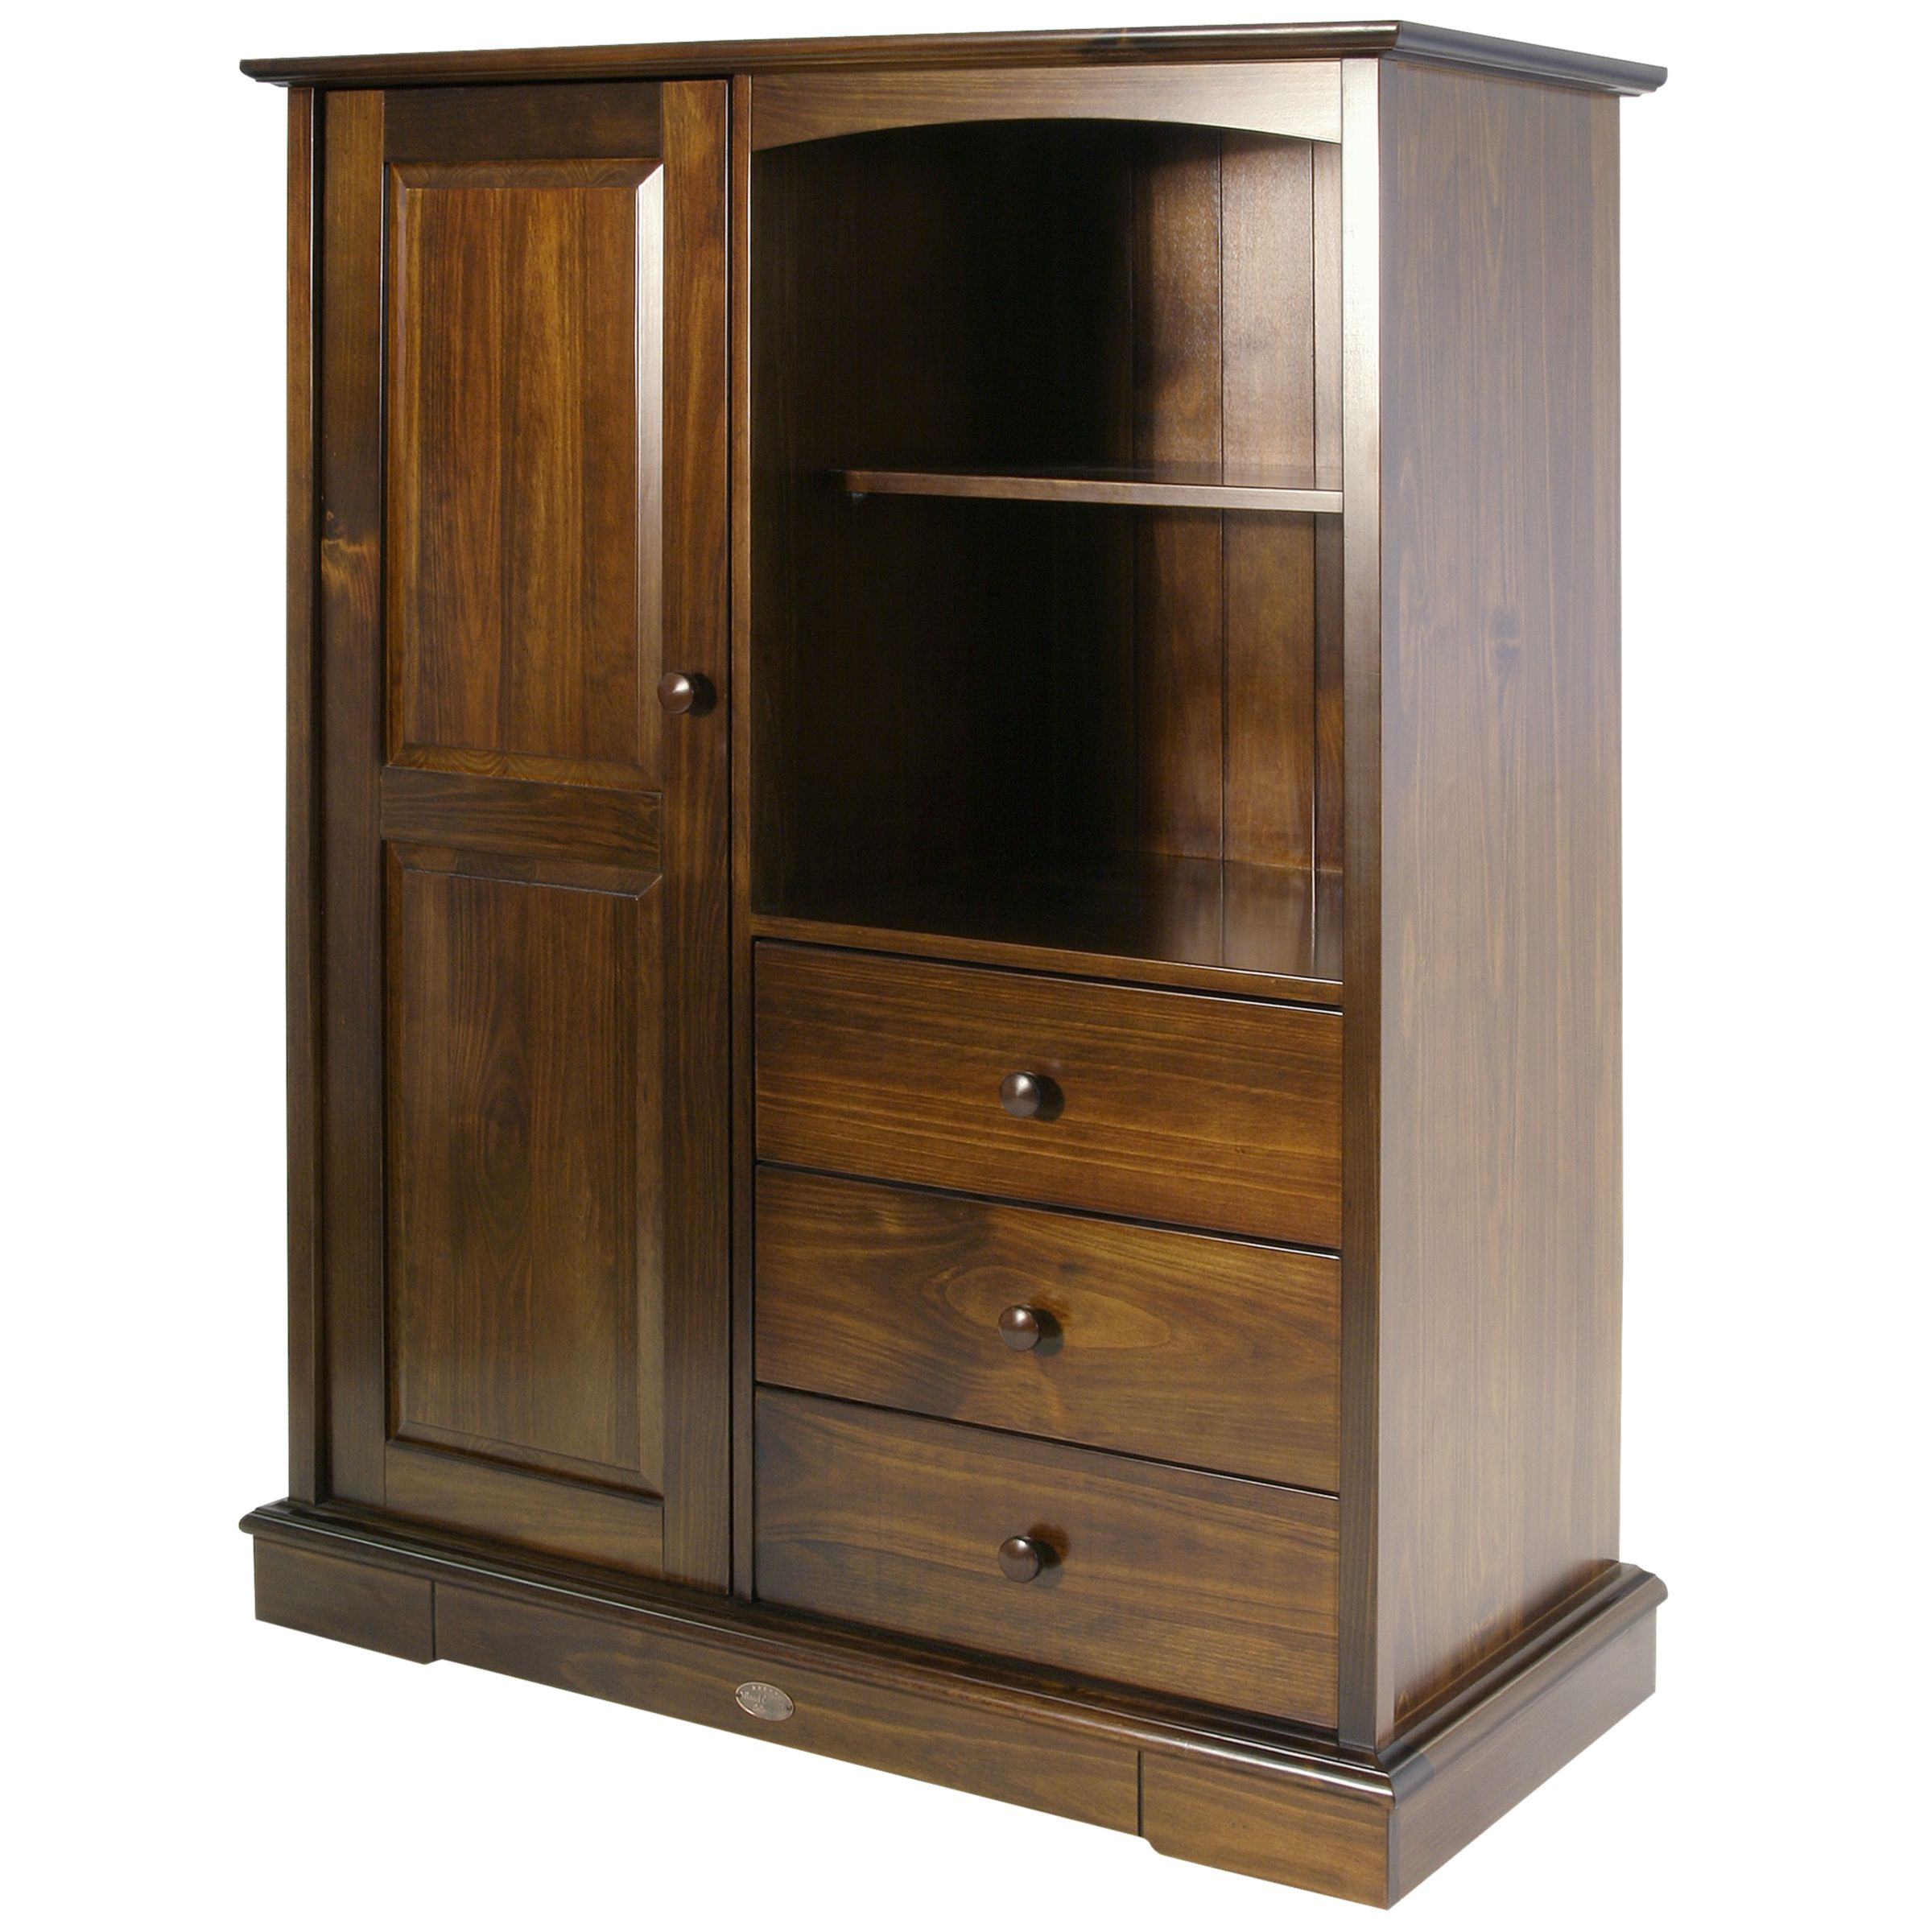 Junior Wardrobe, English Oak